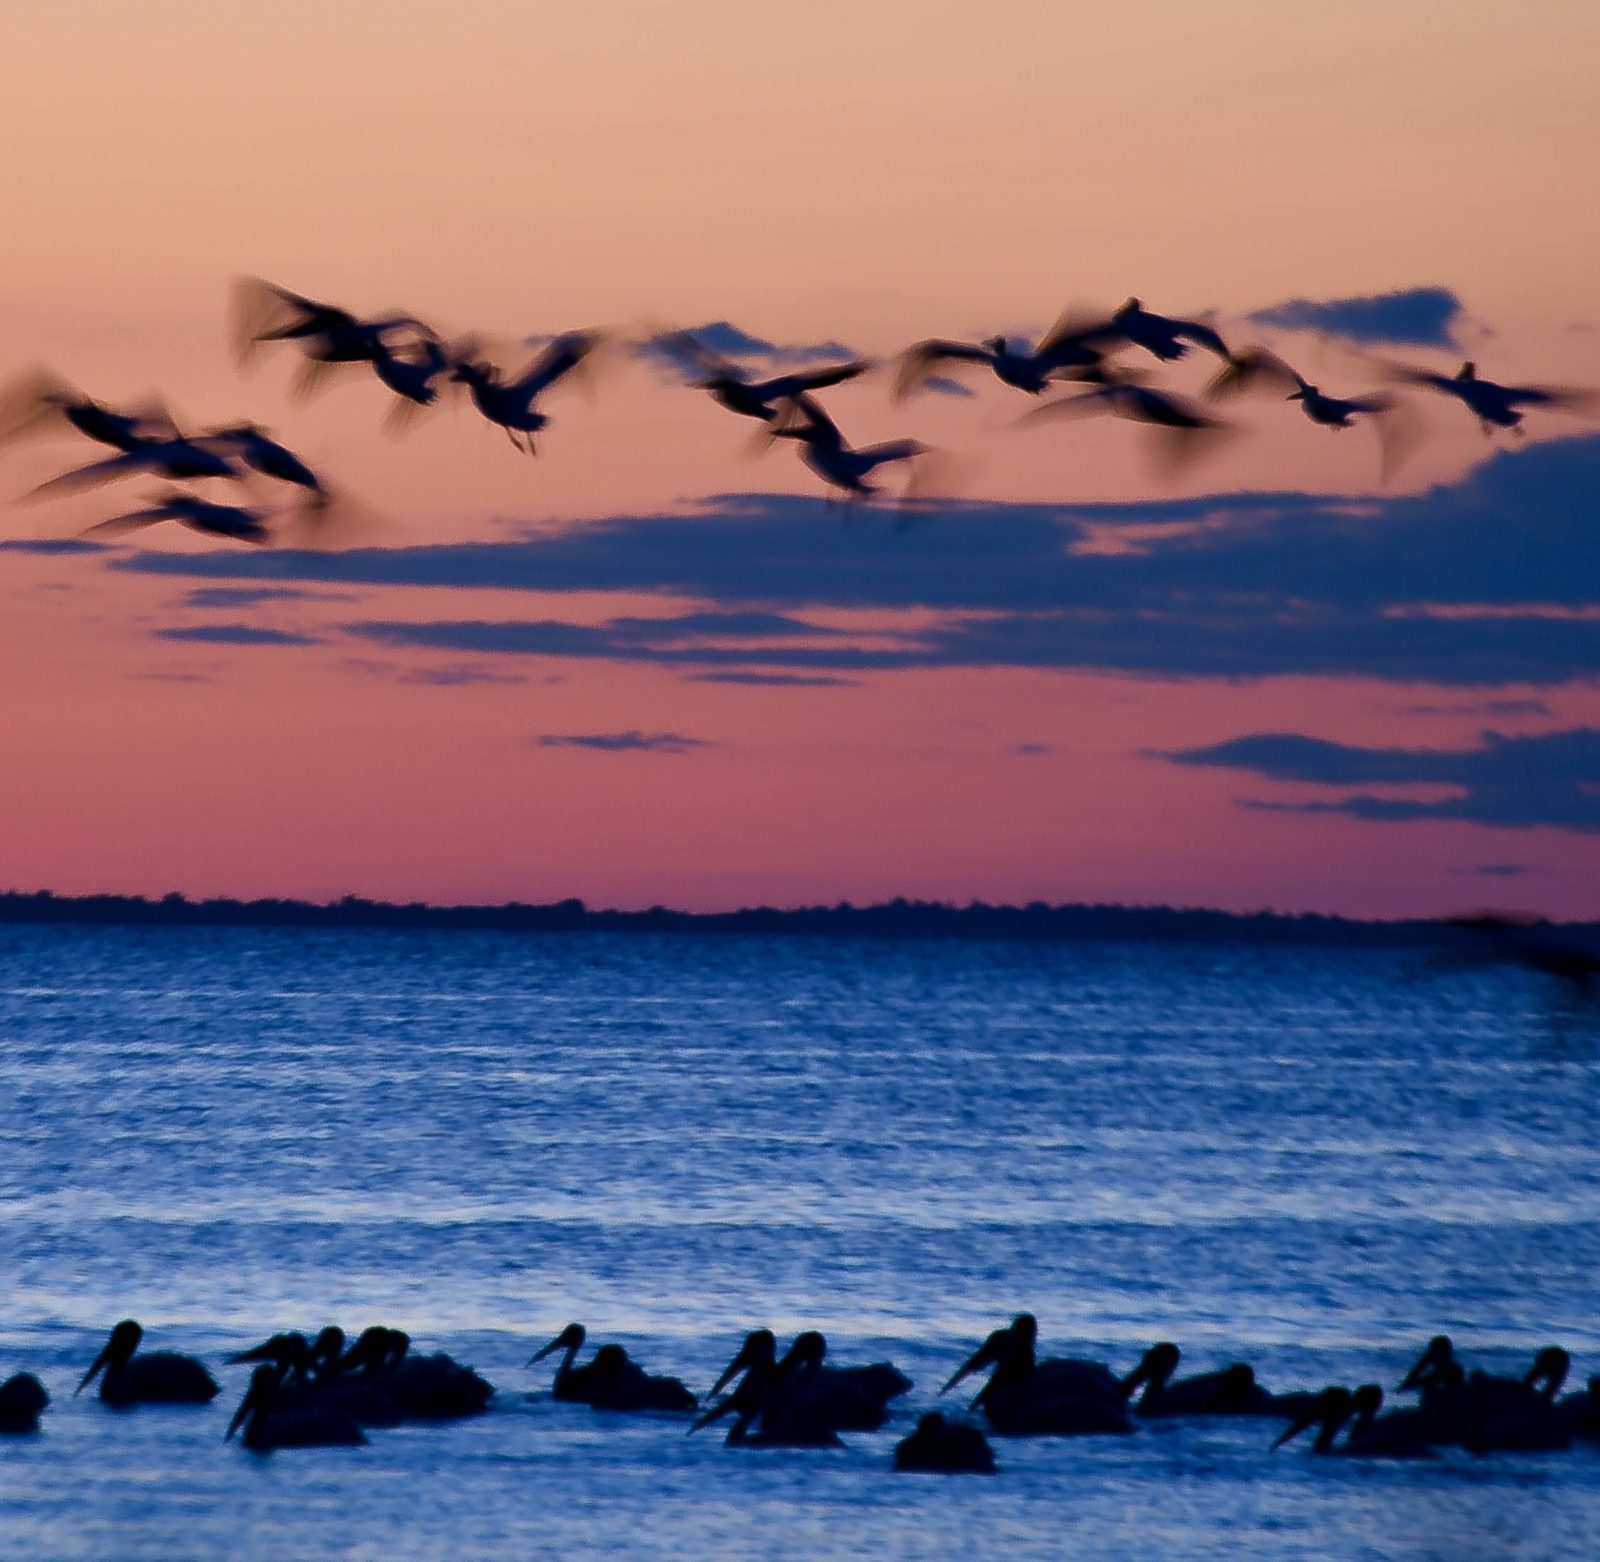 Pelicans on Lake Michigan